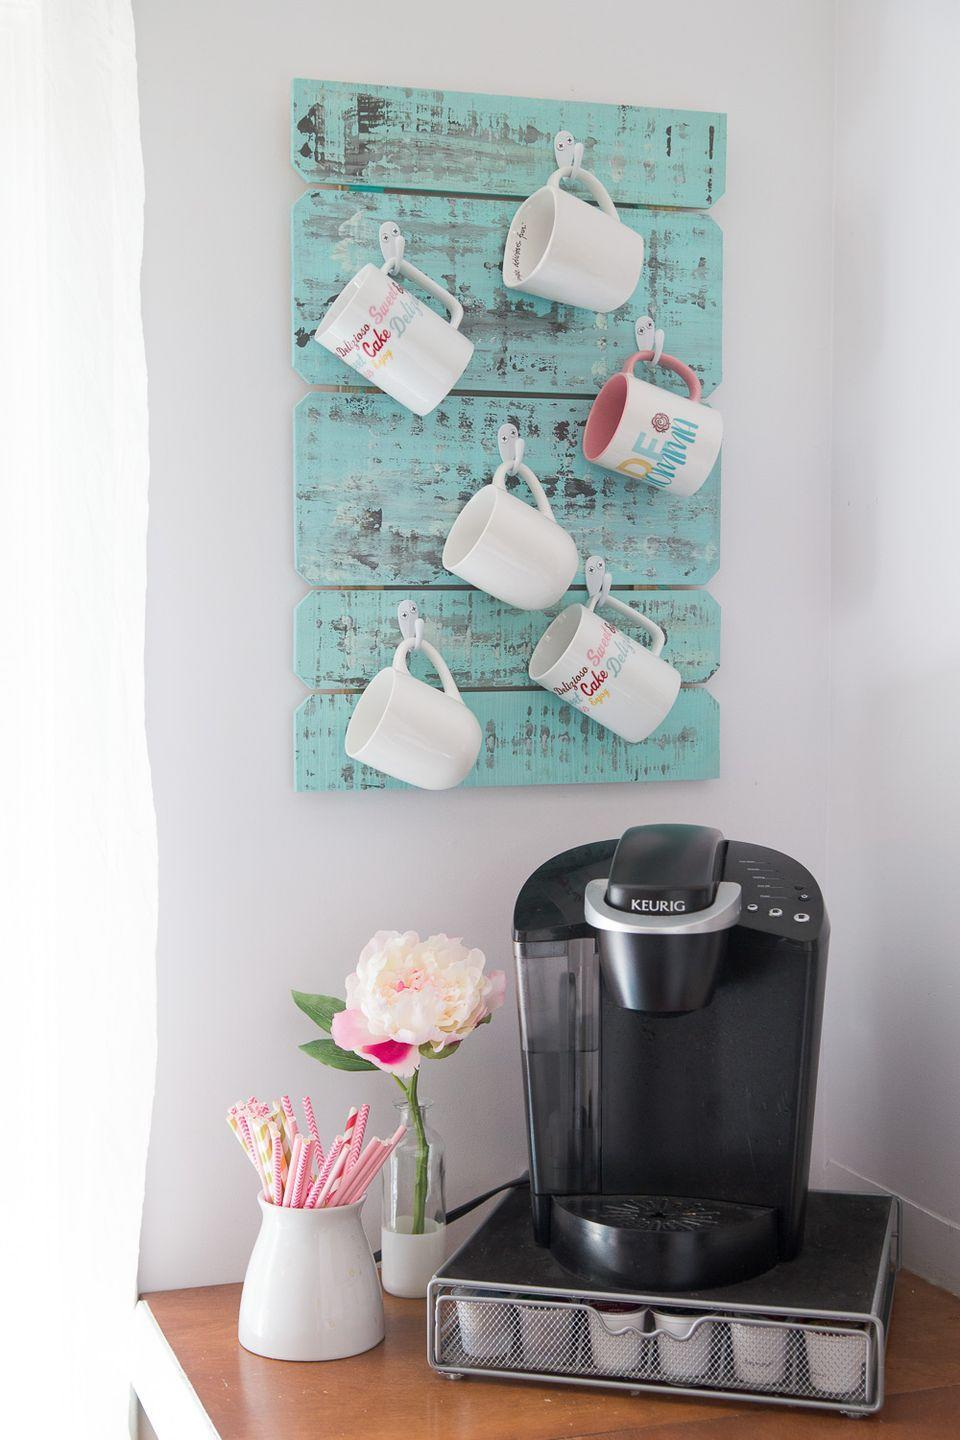 """<p>You could get her yet another mug <em>or</em> you could make this pretty, rustic-inspired mug organizer to hold all of the gifts you've given her throughout the years<br></p><p><a href=""""https://www.madetobeamomma.com/coffee-cup-holder/?crlt.pid=camp.MazQyqmrXEjR"""" rel=""""nofollow noopener"""" target=""""_blank"""" data-ylk=""""slk:Get the tutorial at Made to Be a Momma »"""" class=""""link rapid-noclick-resp""""><em>Get the tutorial at Made to Be a Momma »</em></a> </p>"""